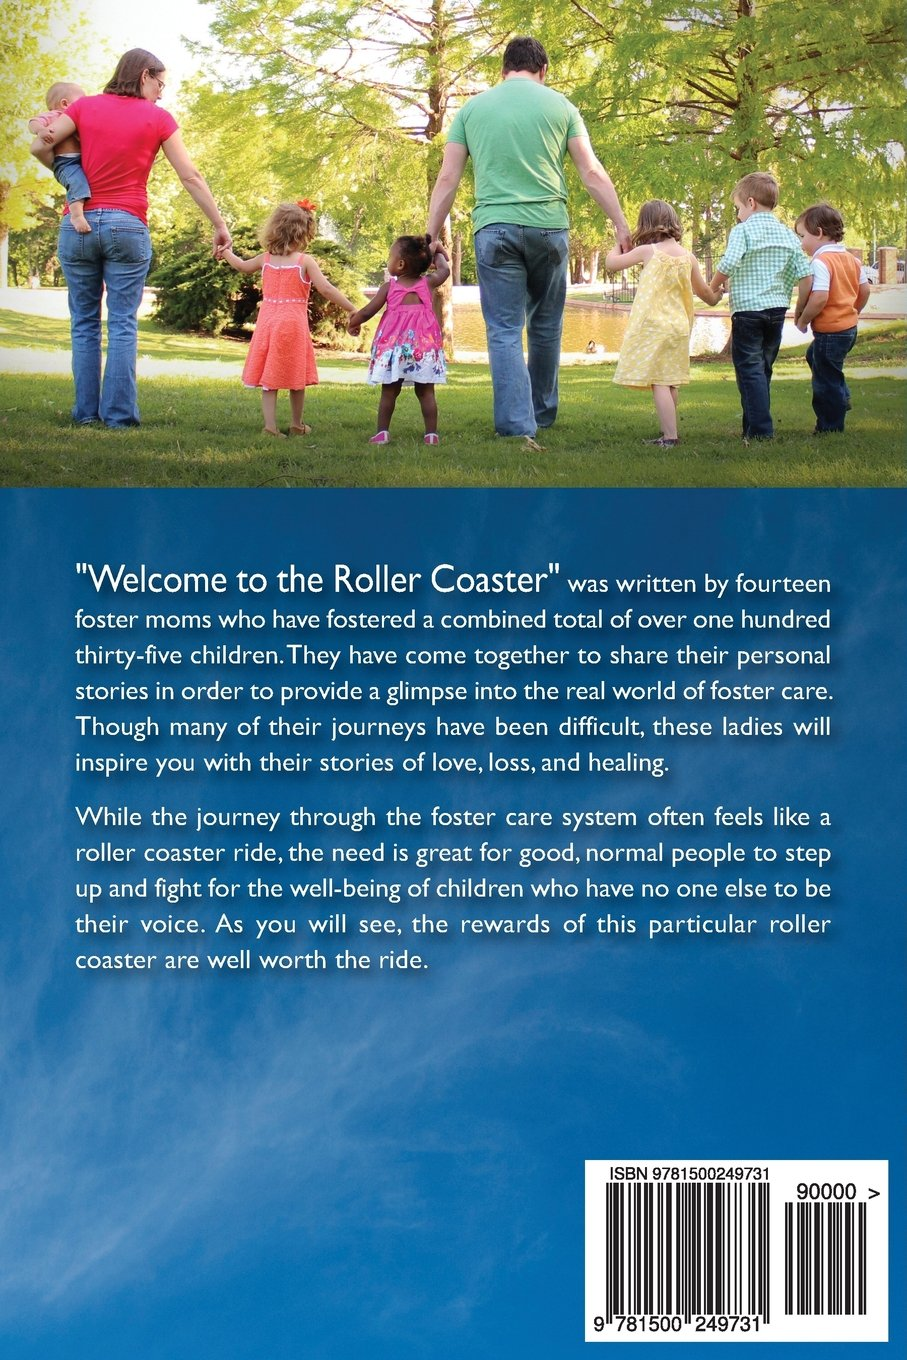 Welcome to the rollercoaster d d foster 9781500249731 amazon welcome to the rollercoaster d d foster 9781500249731 amazon books fandeluxe Ebook collections